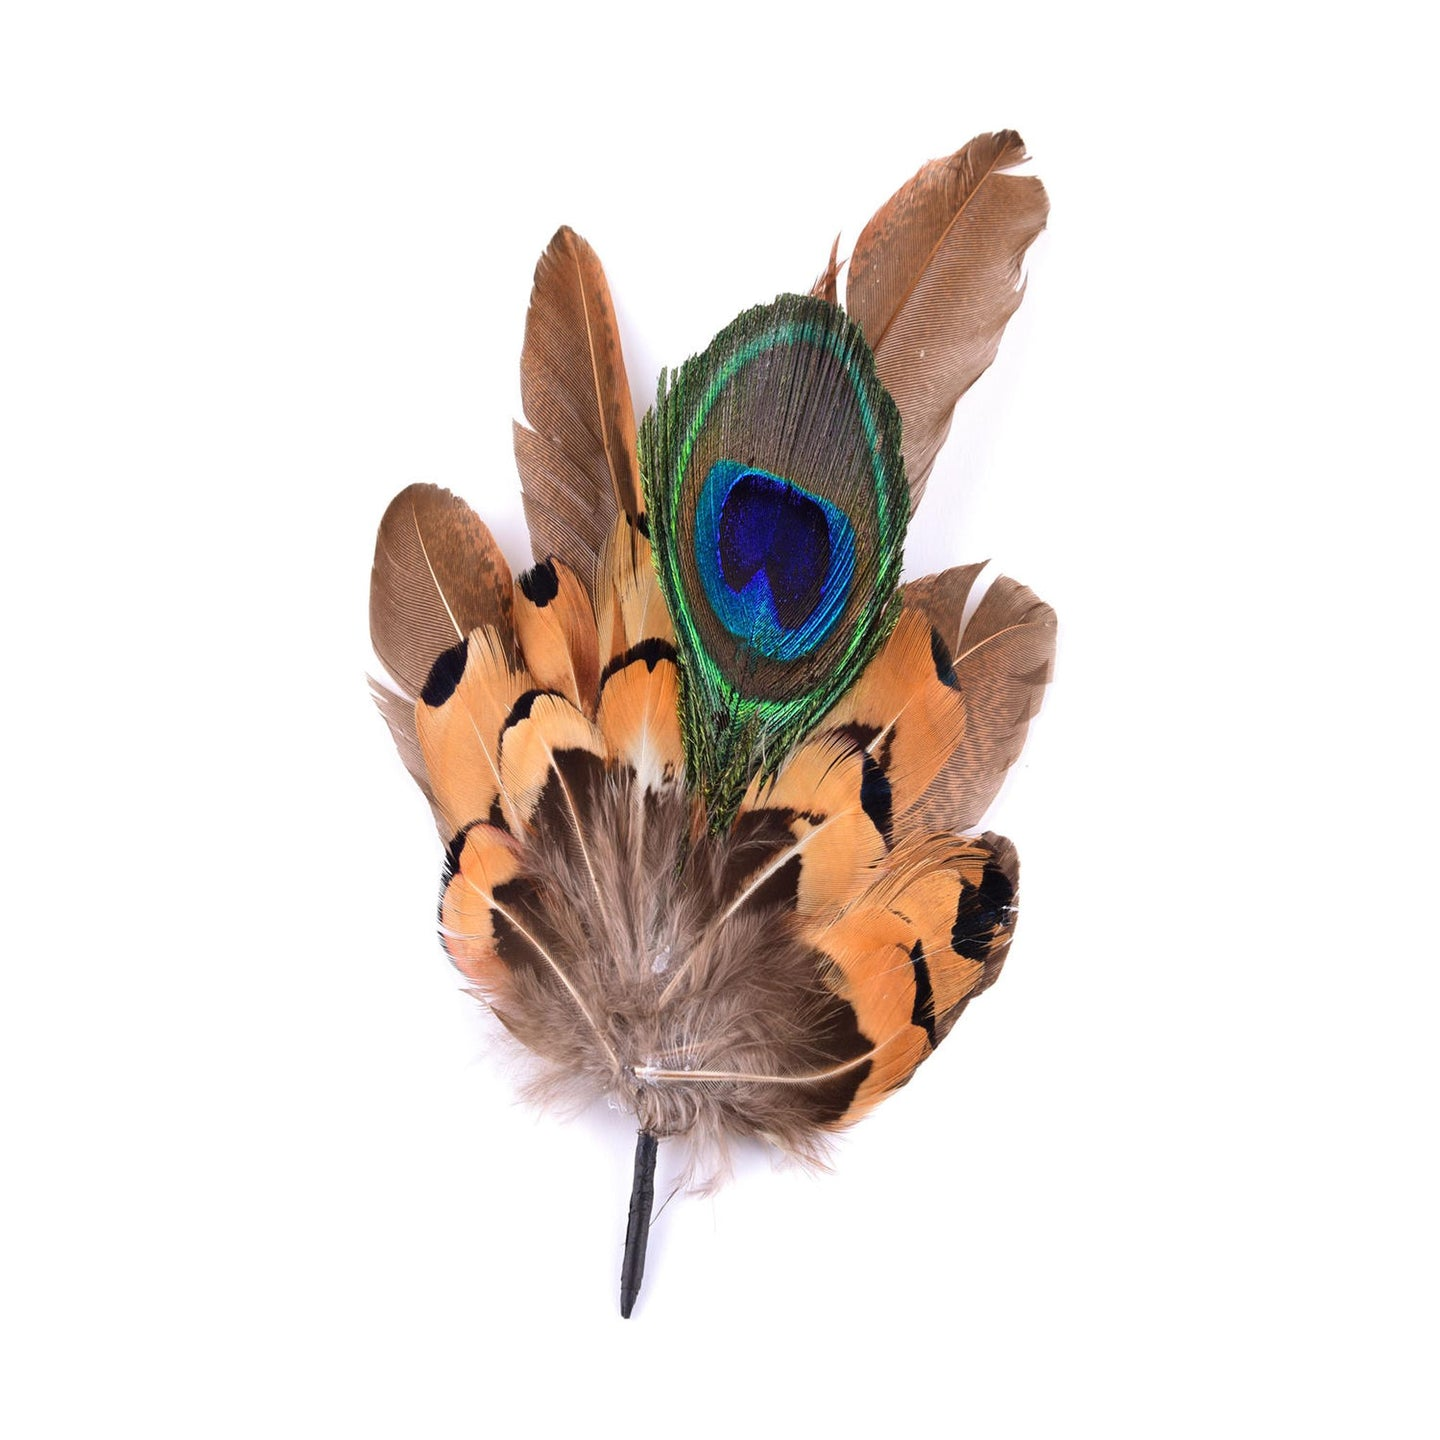 Medium pheasant feather mount trim for millinery fascinator wedding hats FM012